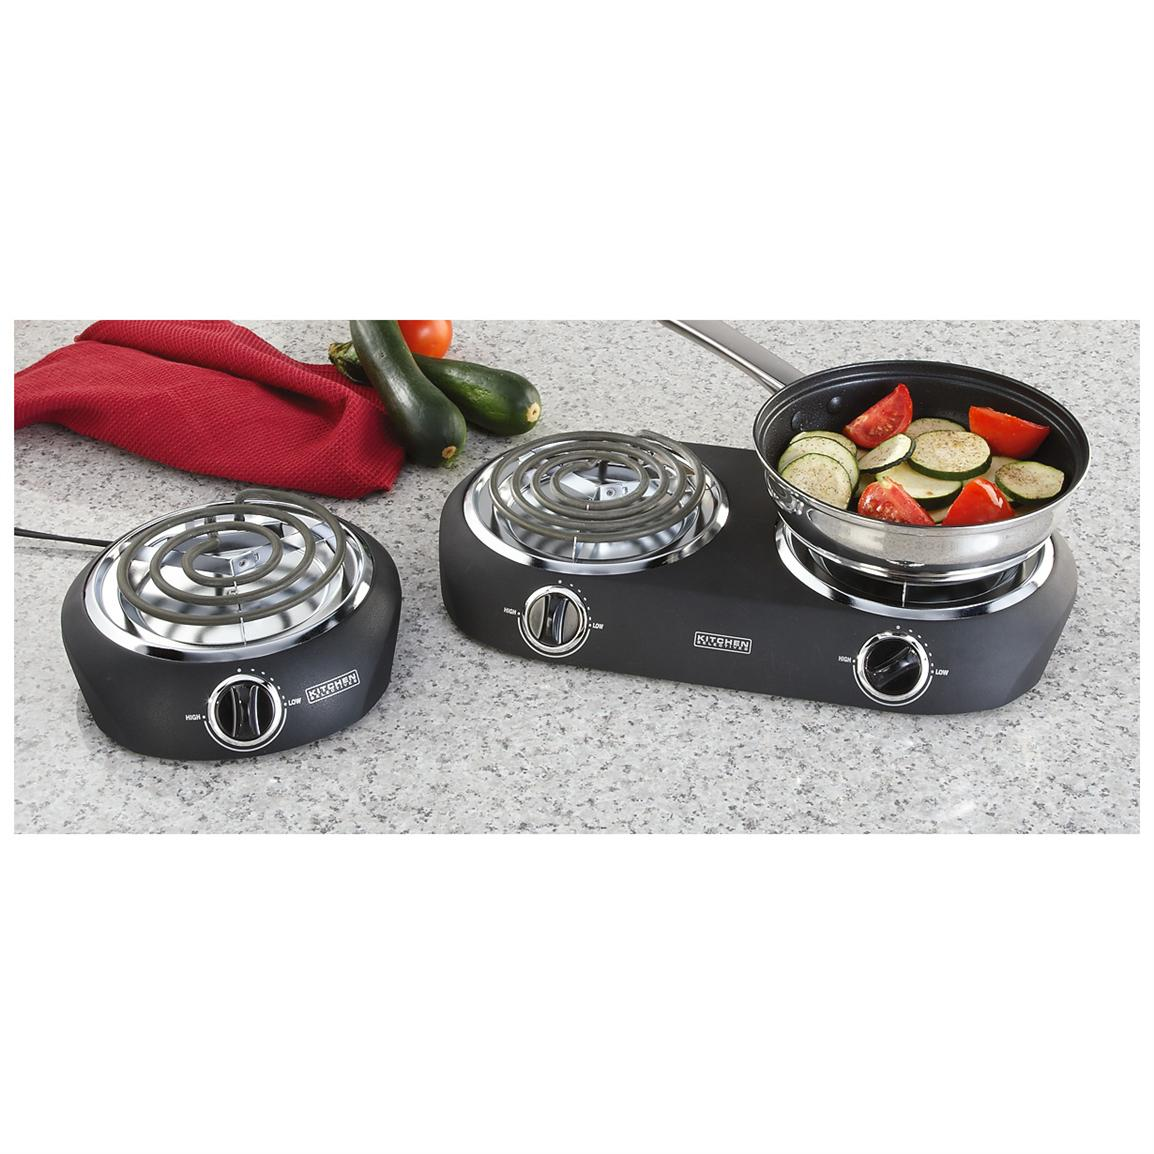 Single or Double Burner Electric Hot Plate